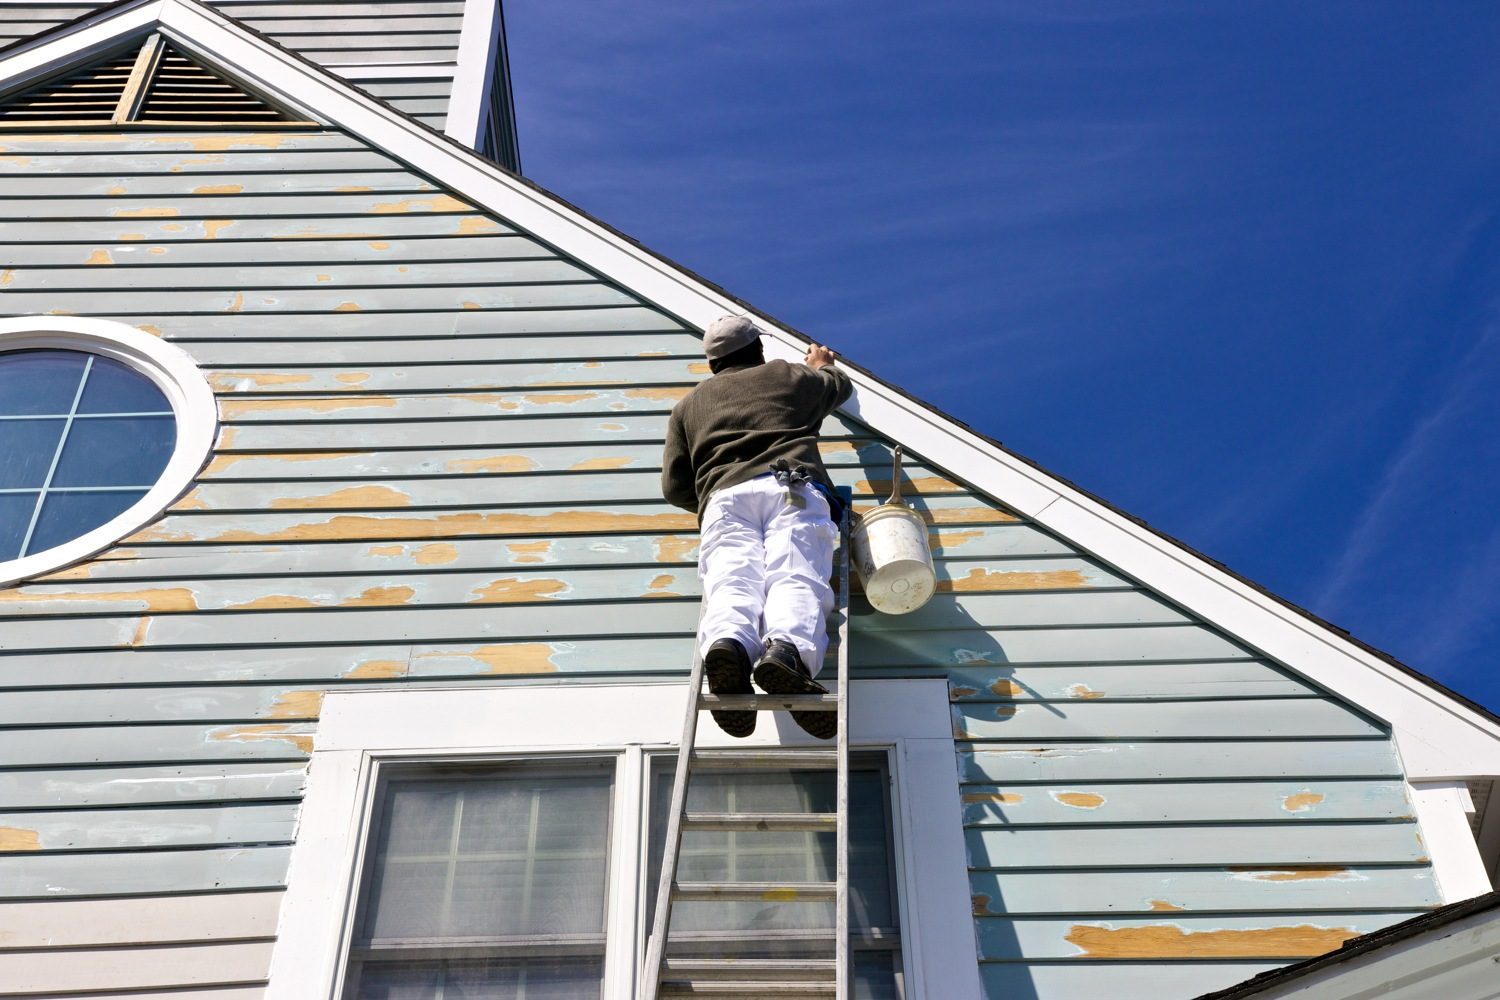 Man on ladder painting exterior of house with chipped paint.